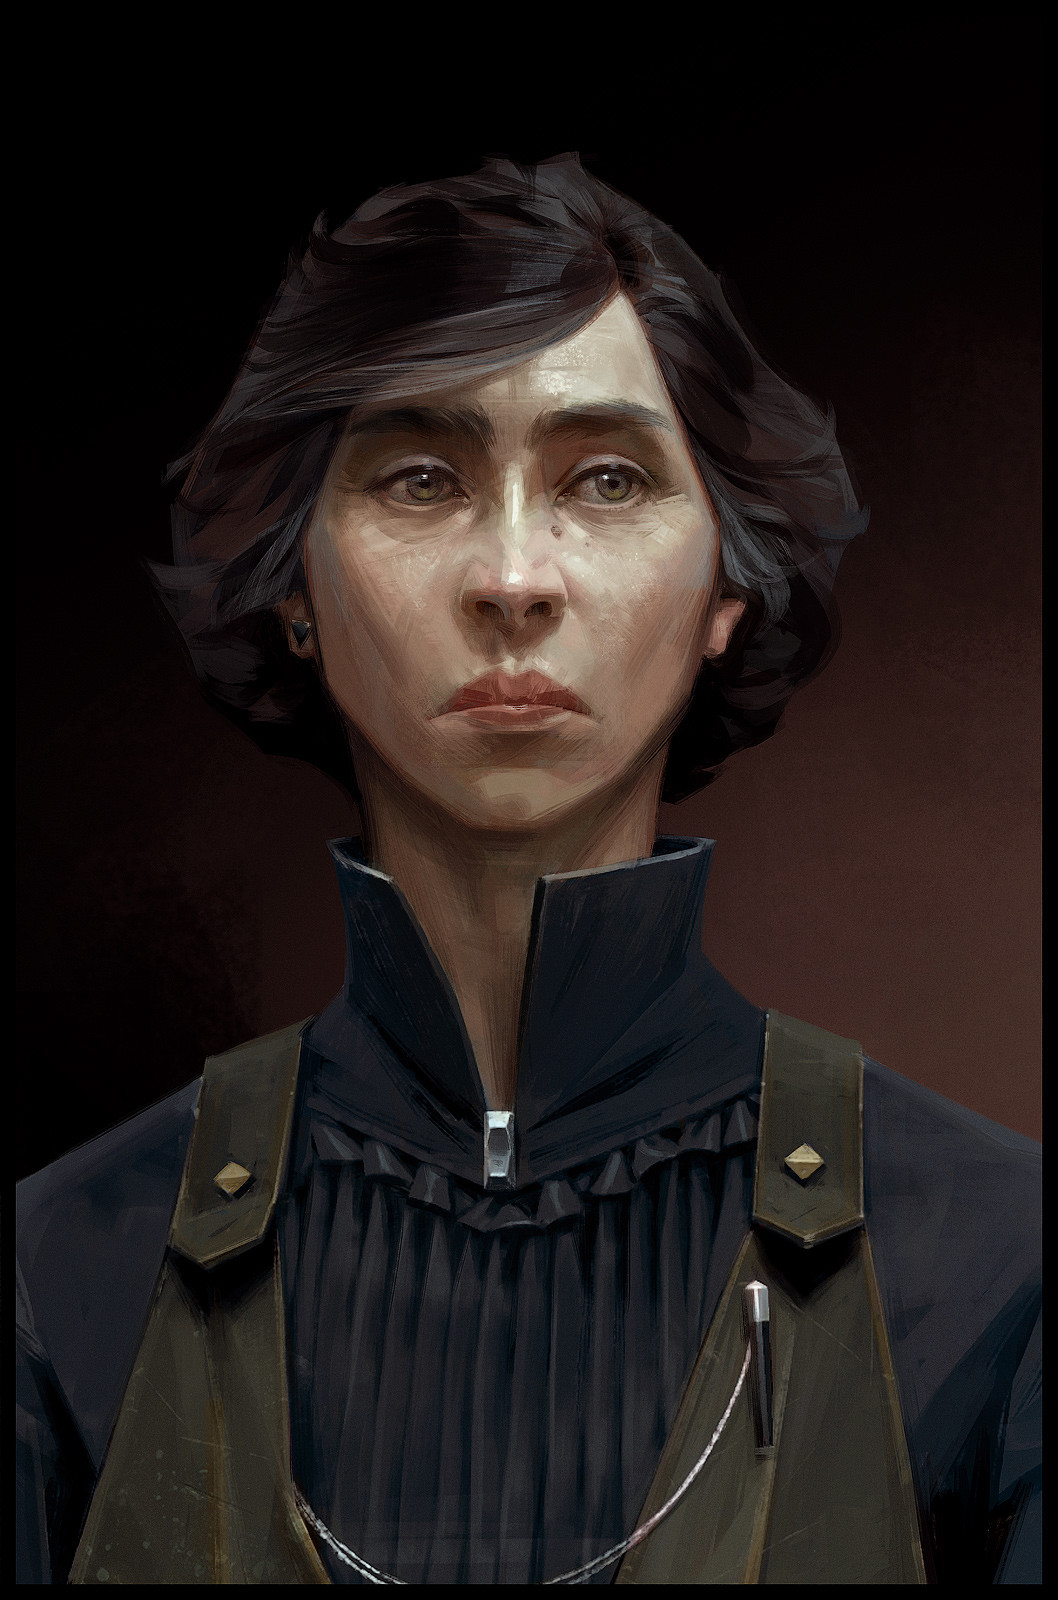 Character Dishonored 2 Concept Art